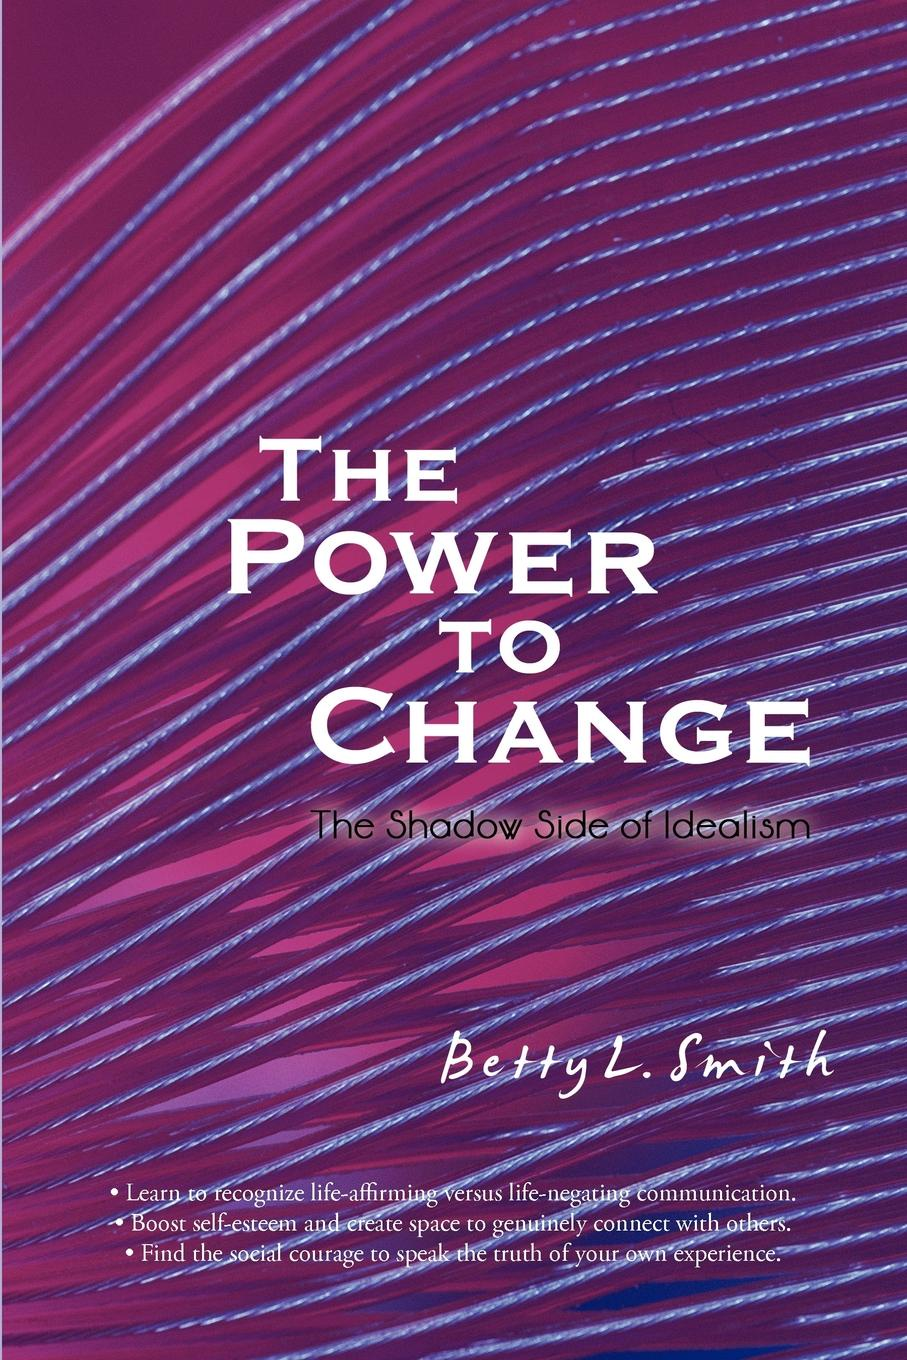 The Power to Change. The Shadow Side of Idealism